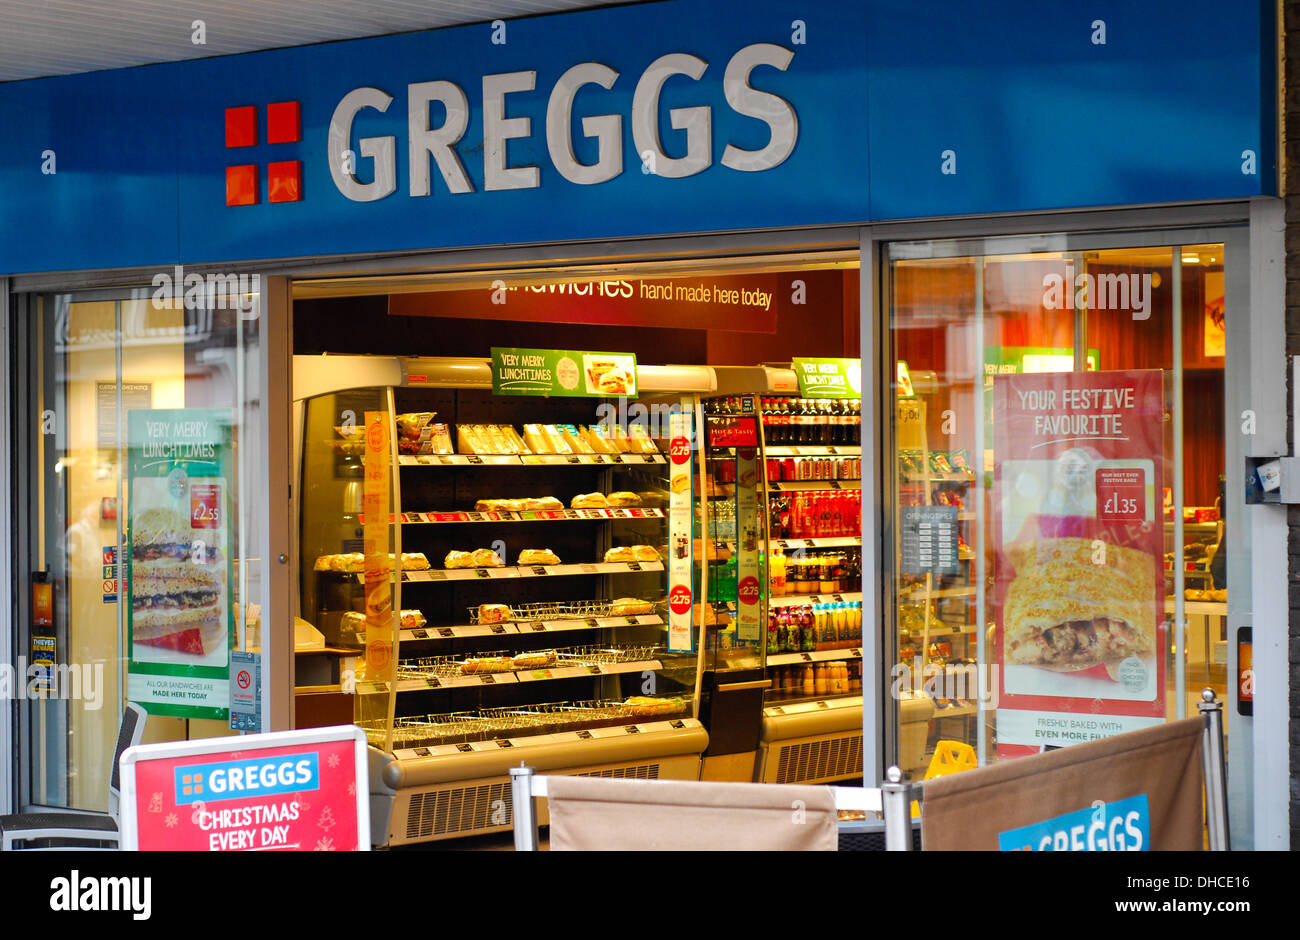 gregs store stock photos gregs store stock images alamy